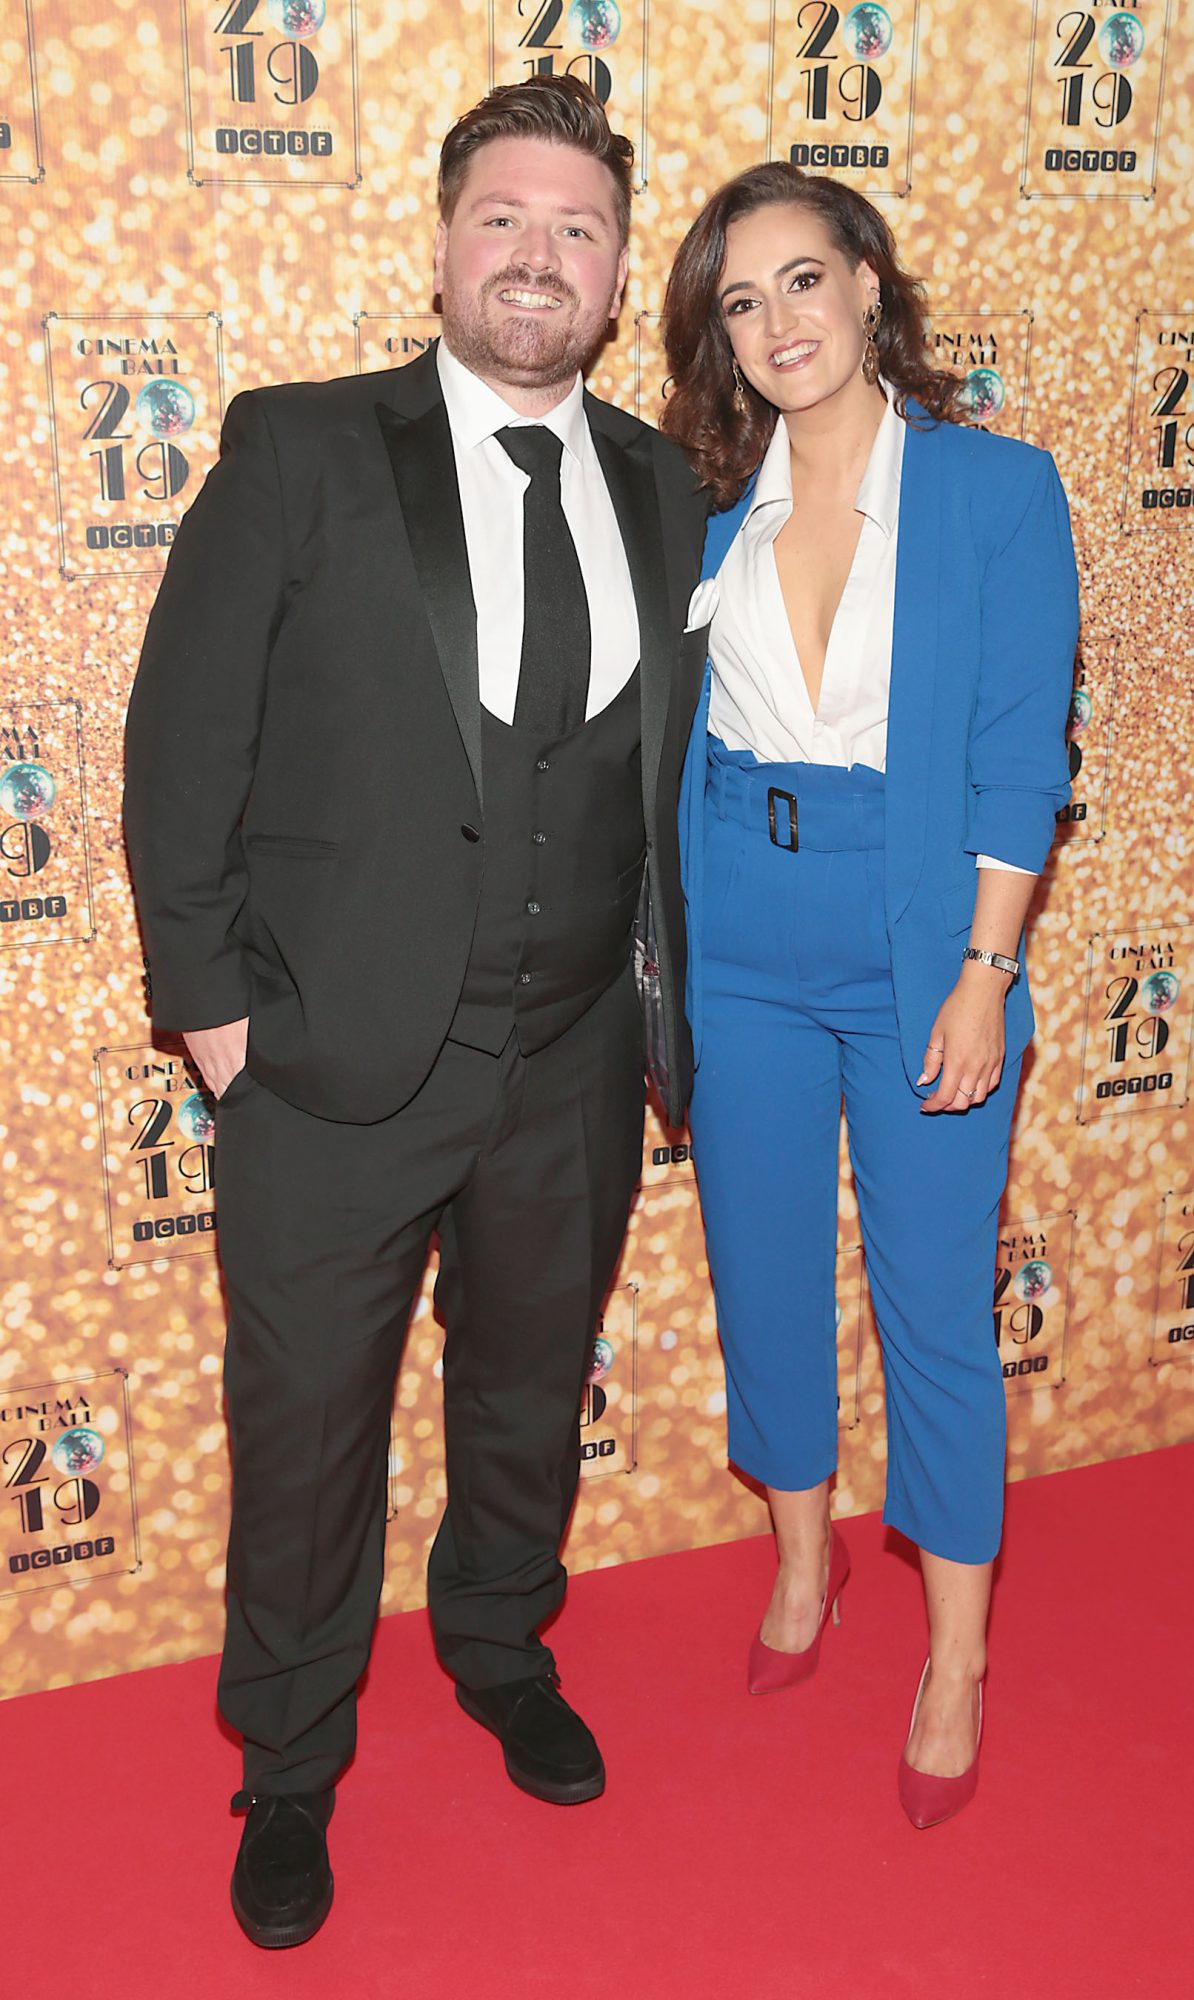 Thomas Crosse and Alice Higgins pictured at the Irish Cinema Ball 2019 in aid of the Irish Cinematograph Trade Benevolent Fund (ICTBF ) at The Shelbourne Hotel, Dublin This year's theme was the iconic 'Studio 54'. Pic: Brian McEvoy.